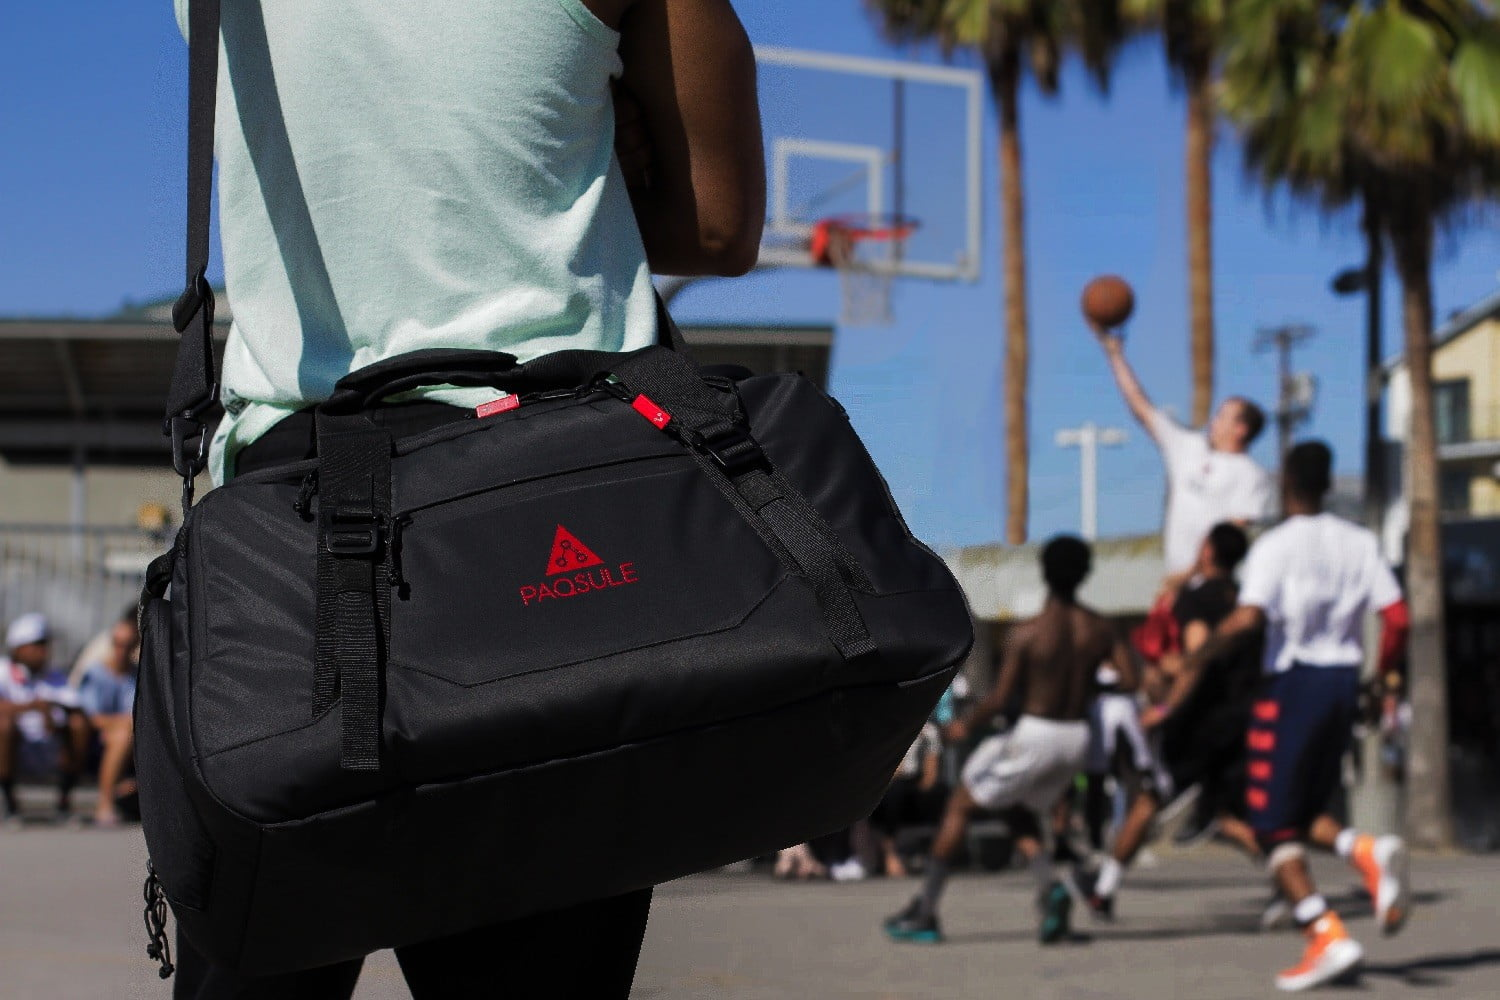 Goodbye Odors! This Smart Gym Bag Freshens Its Contents For You ... 54a855f63edee